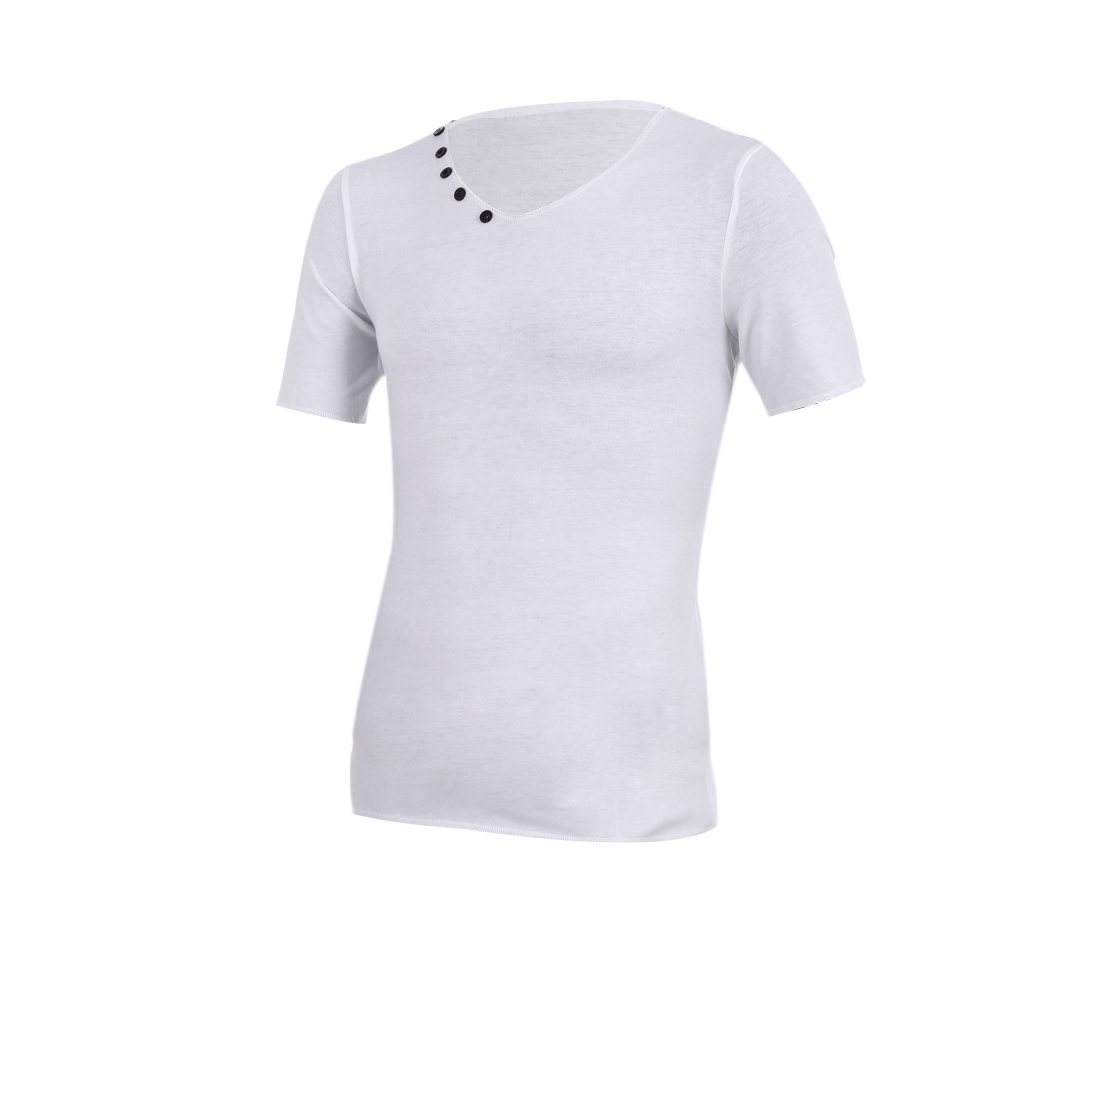 Men V Neck Design Solid Color Short Sleeve Pullover Style Shirt White M